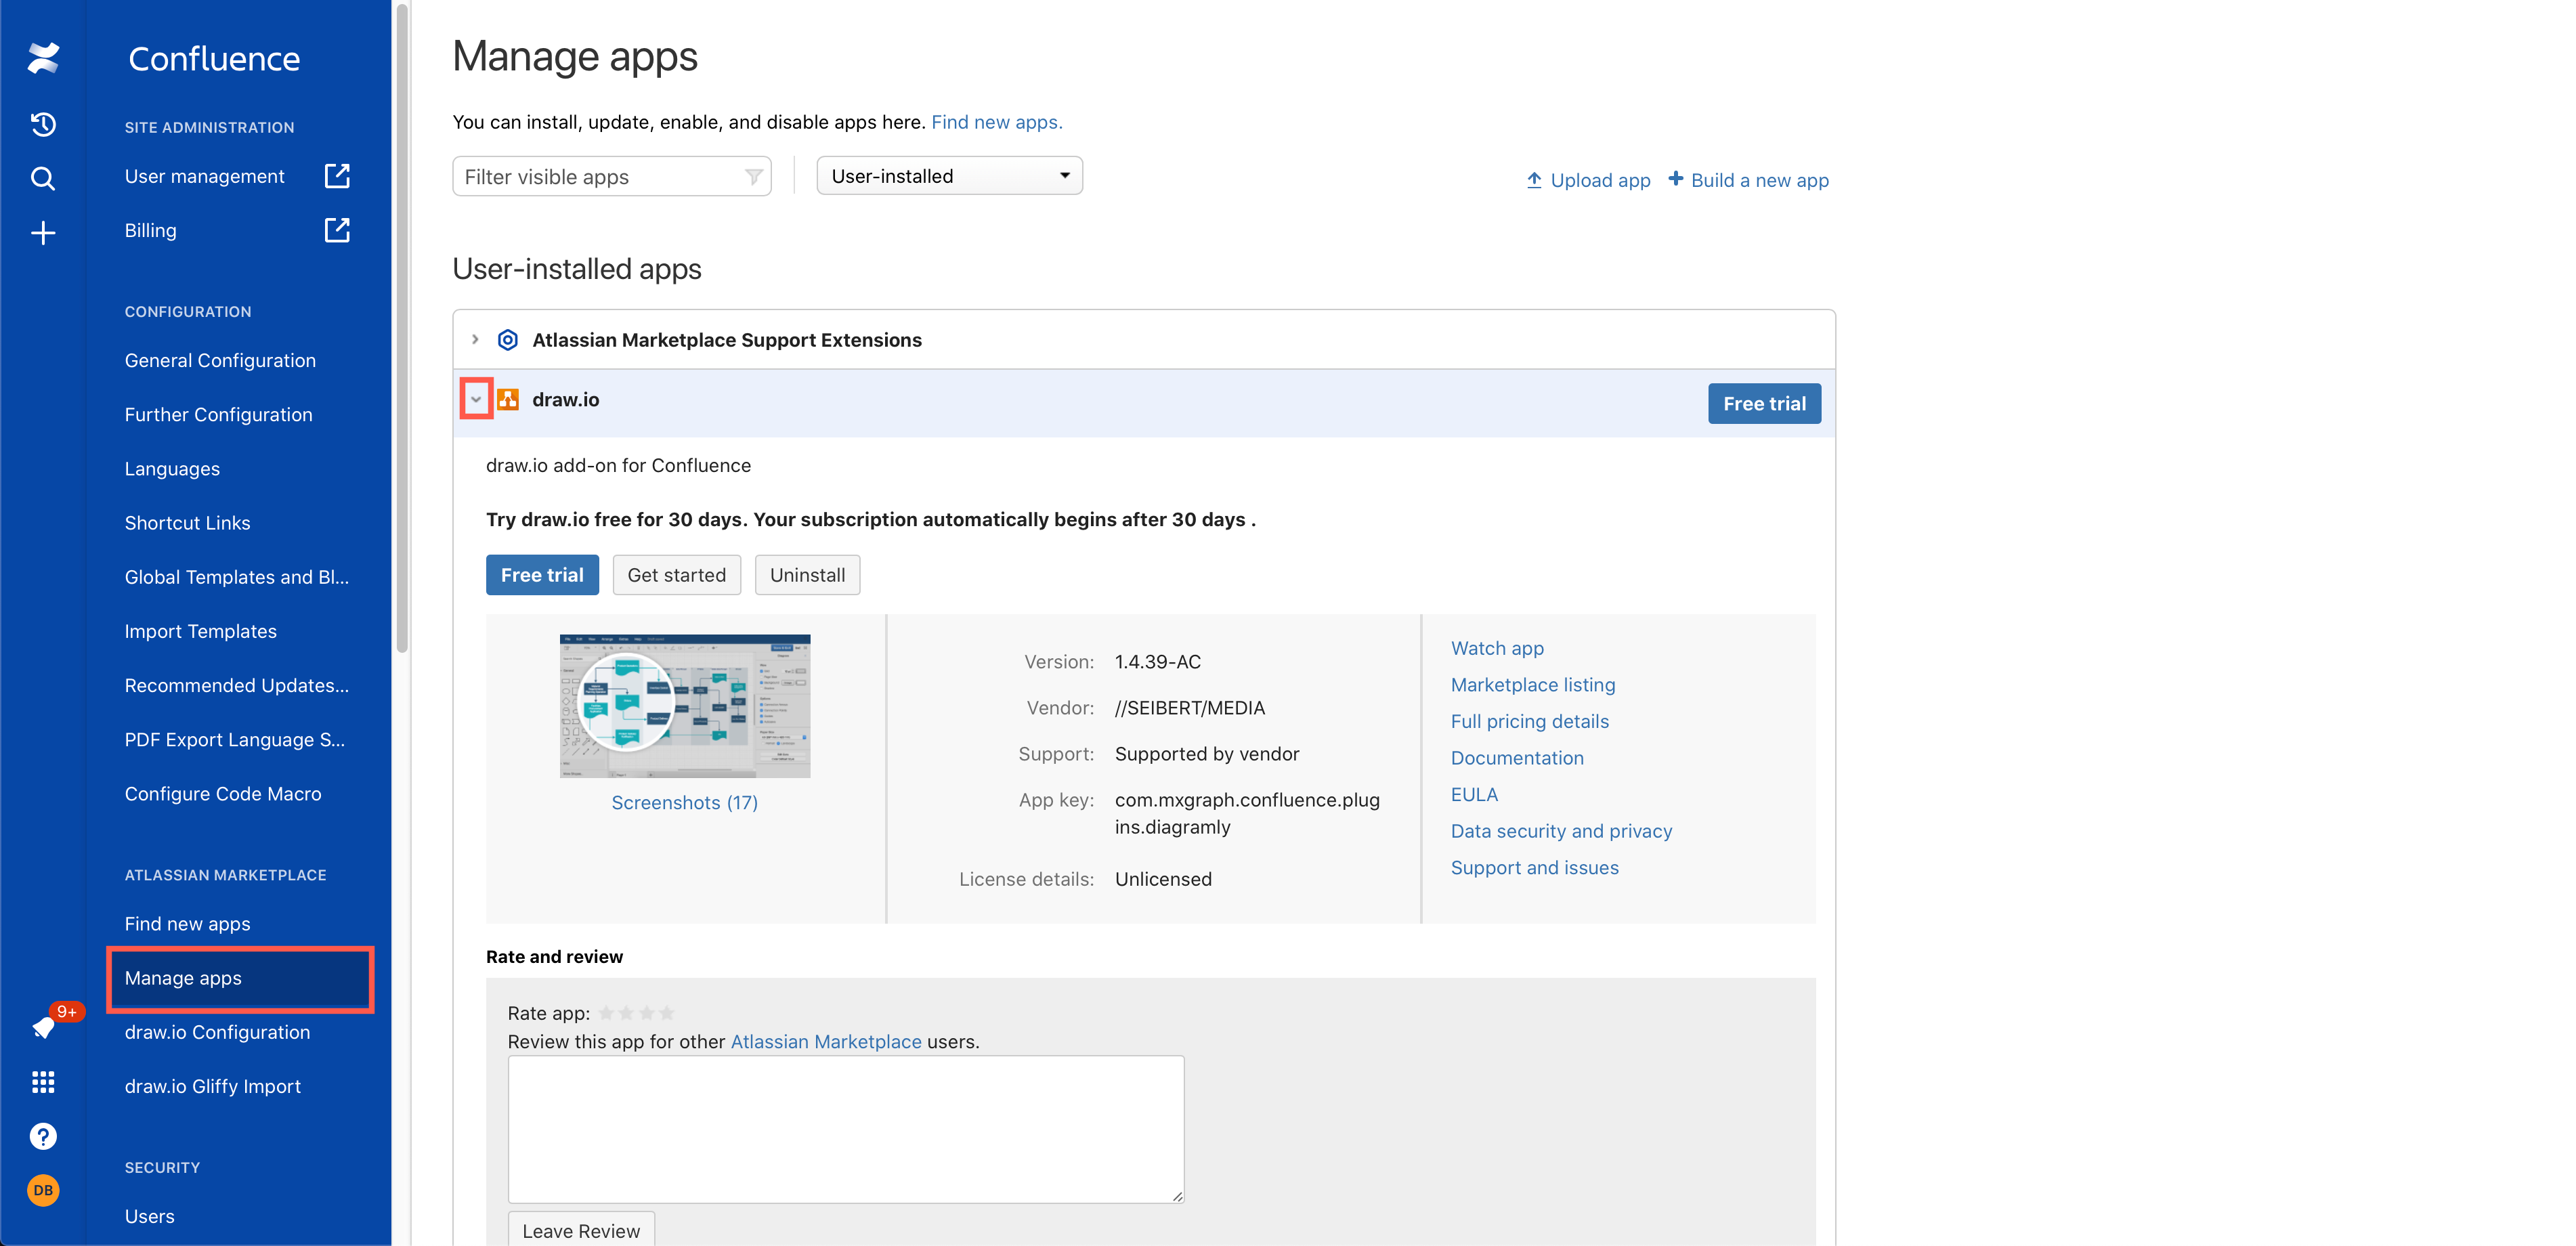 Manage the draw.io app in the Confluence Cloud Settings as an administrator